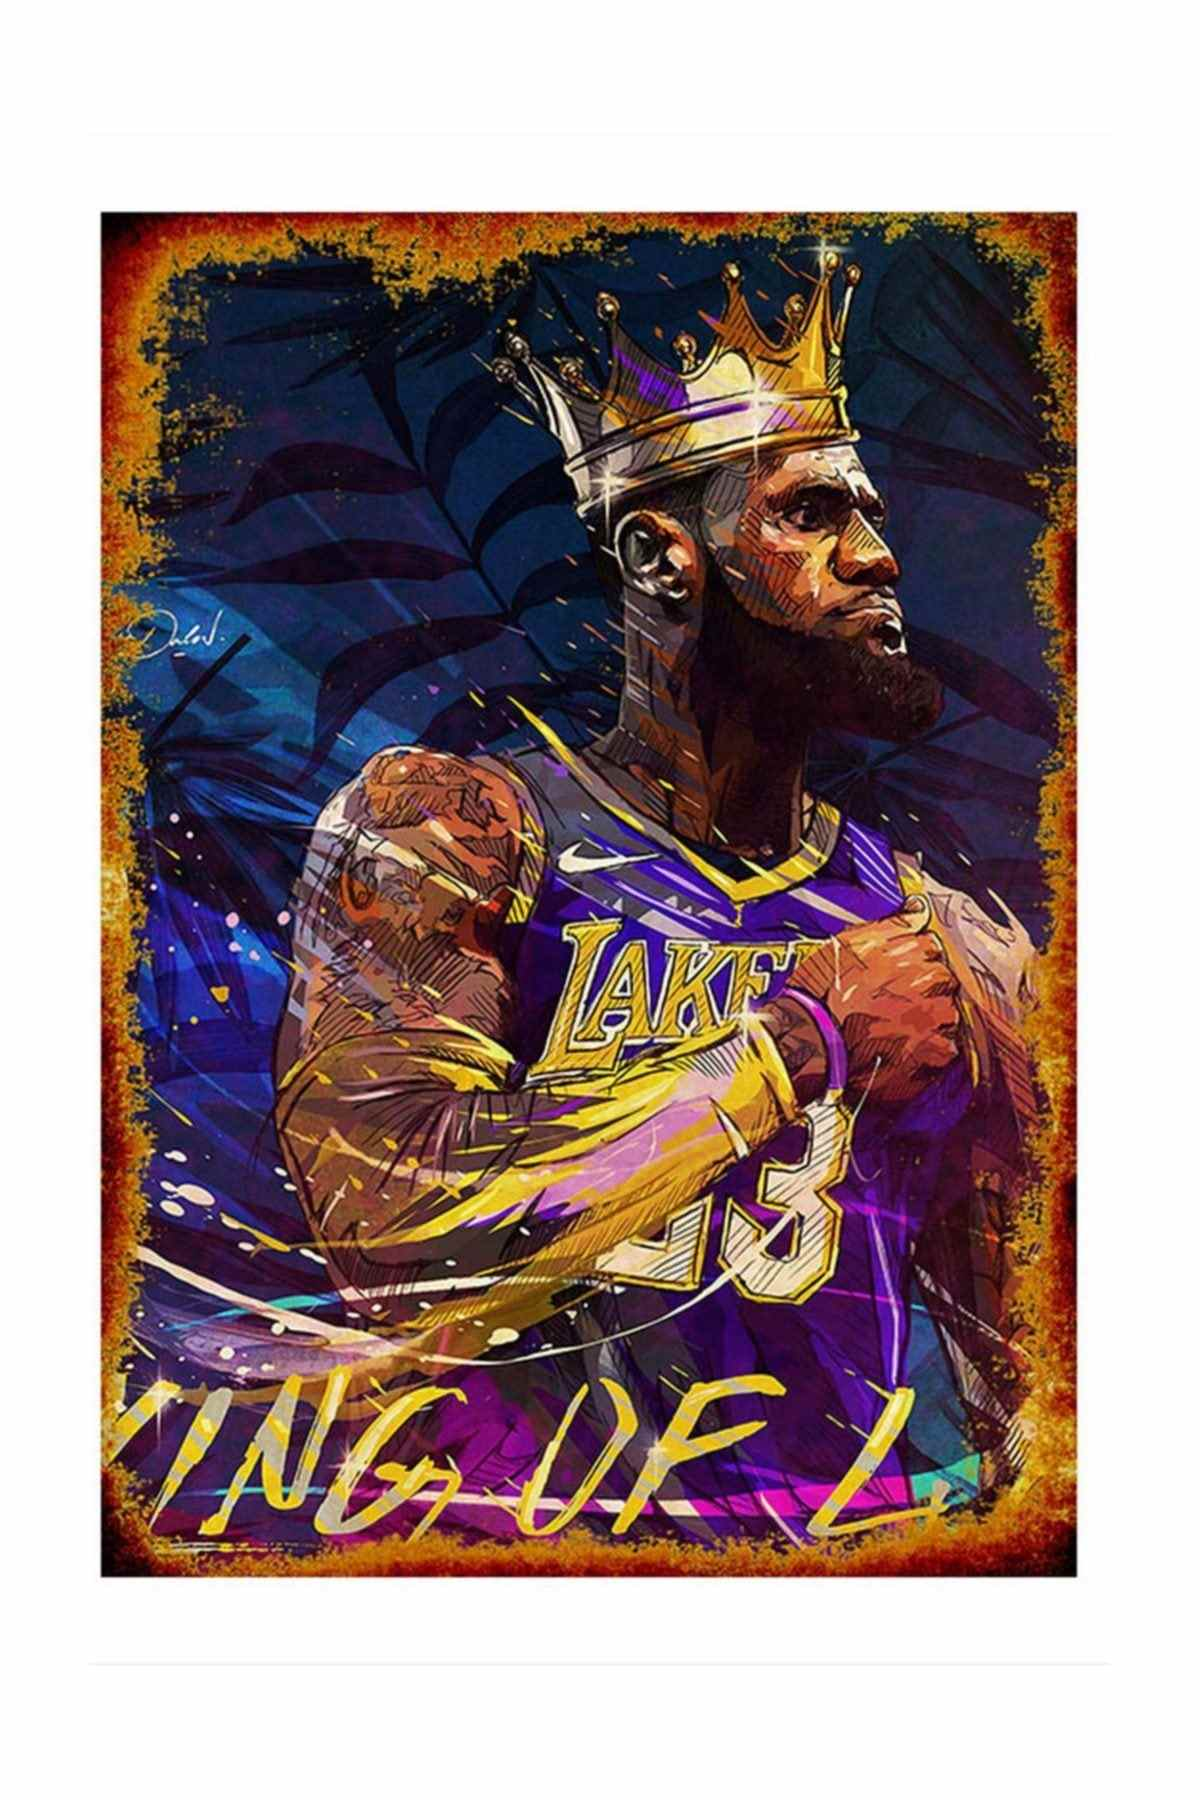 Lebron James Super Basketball Star Silk Poster Decorative Wall Paint 24x36inch Painting Calligraphy Aliexpress